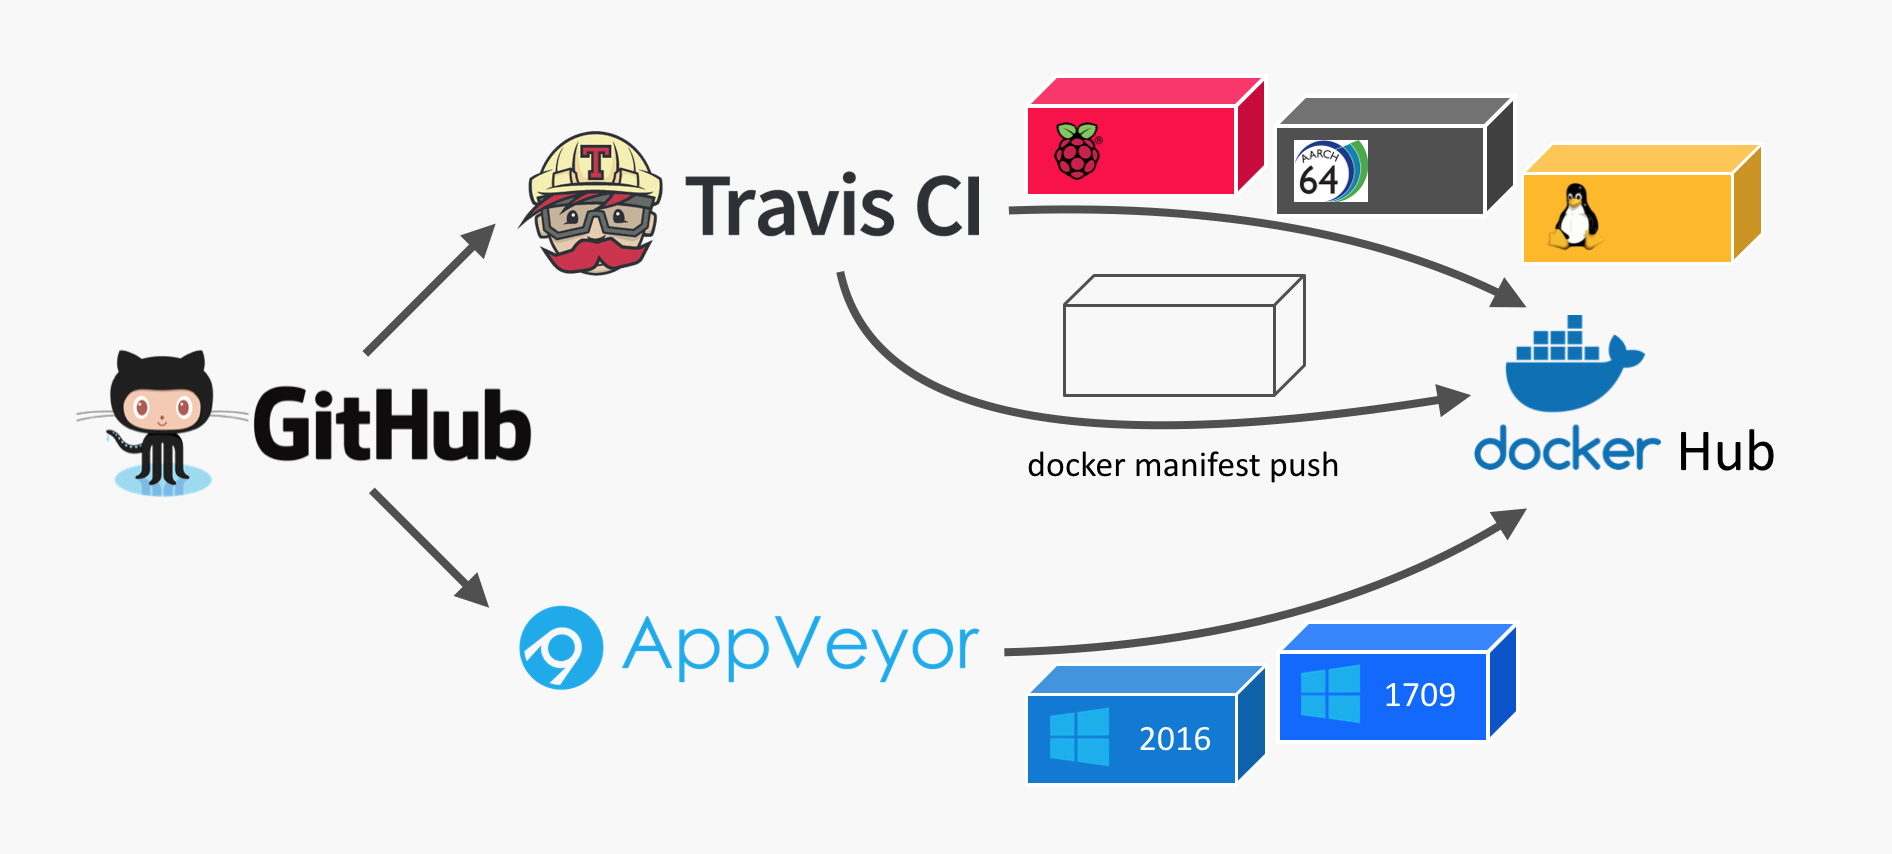 How to use AppVeyor to build a multi-arch Docker image for